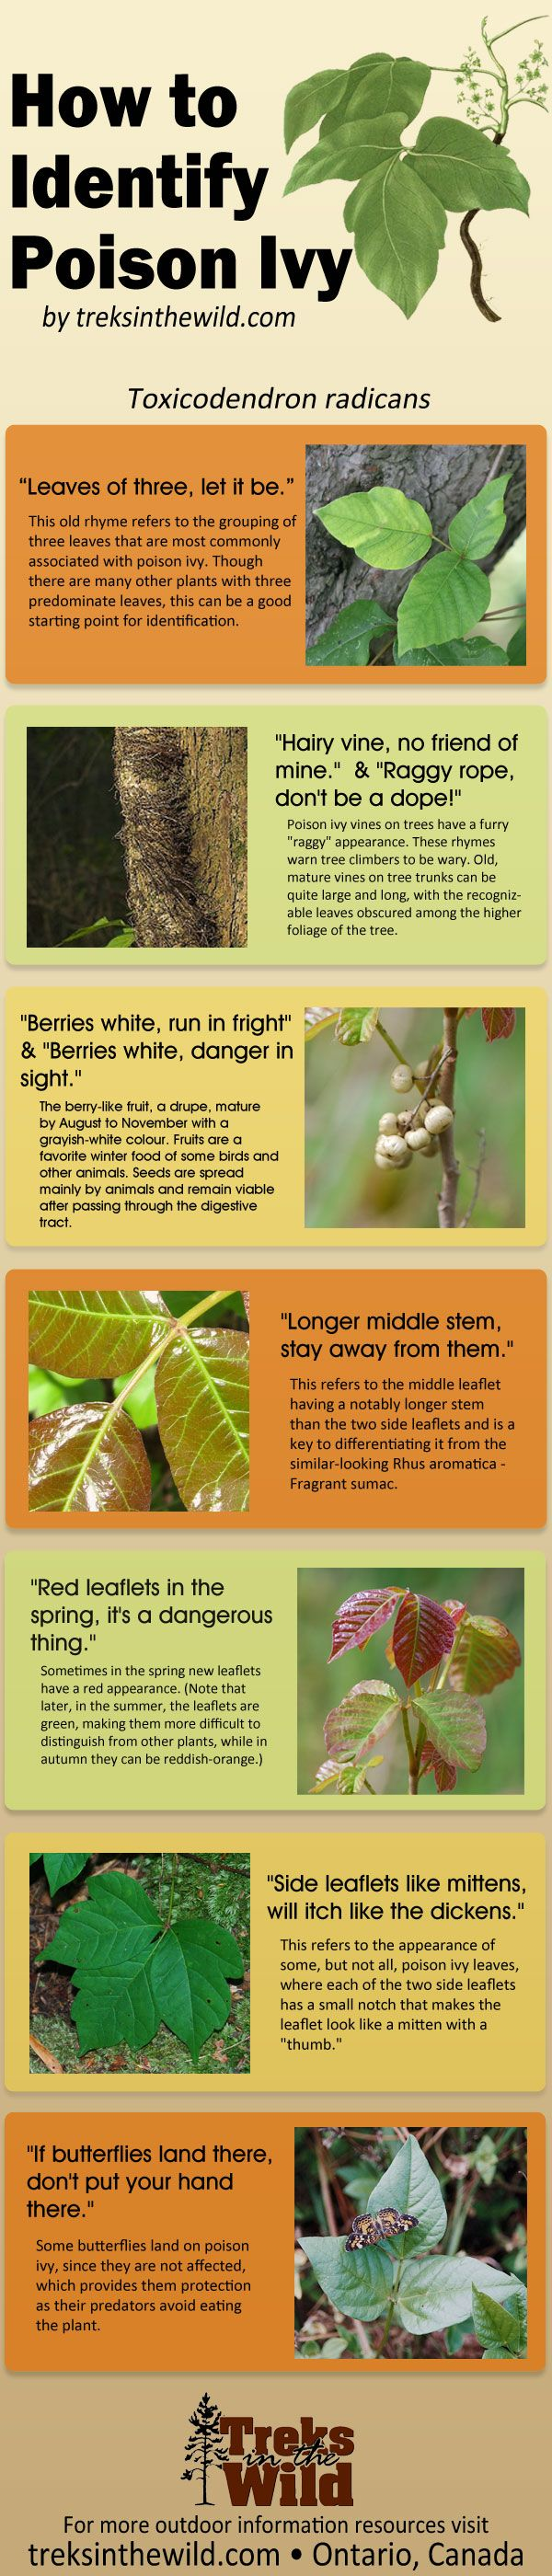 How to identify poison ivy - helpful for kids and adults alike!